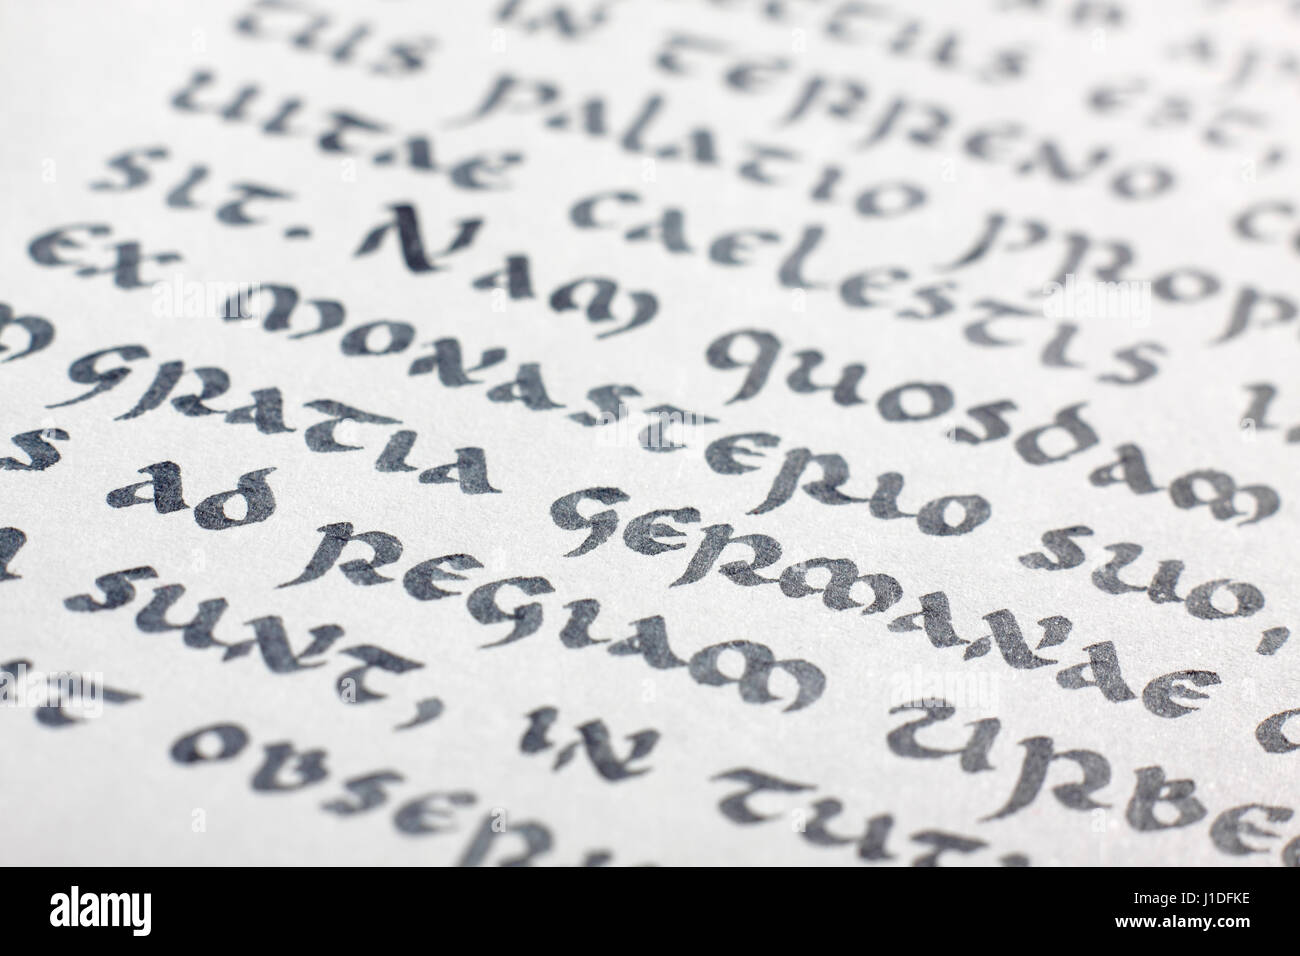 Close Up View Of Ancient Writing Medieval Uncial Script Latin Language